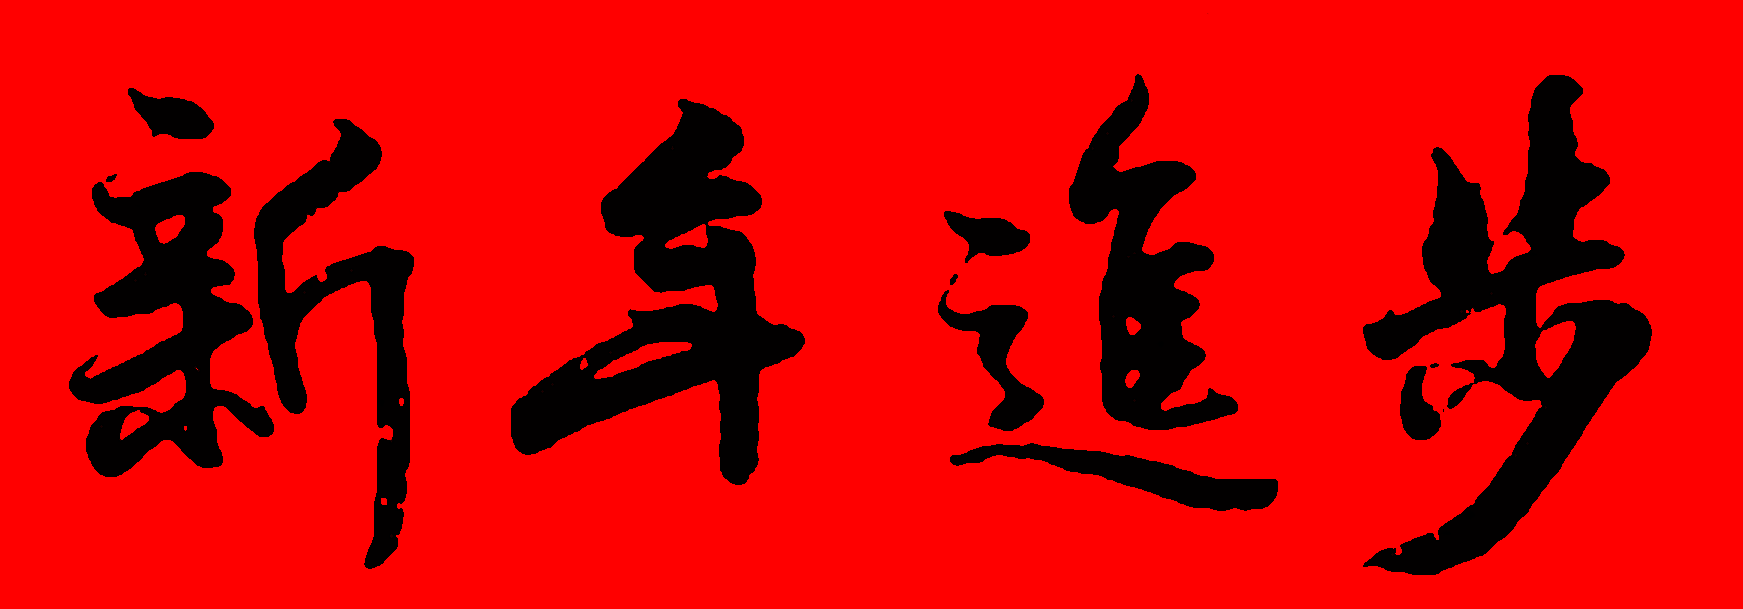 Calligraphy done for the new year of